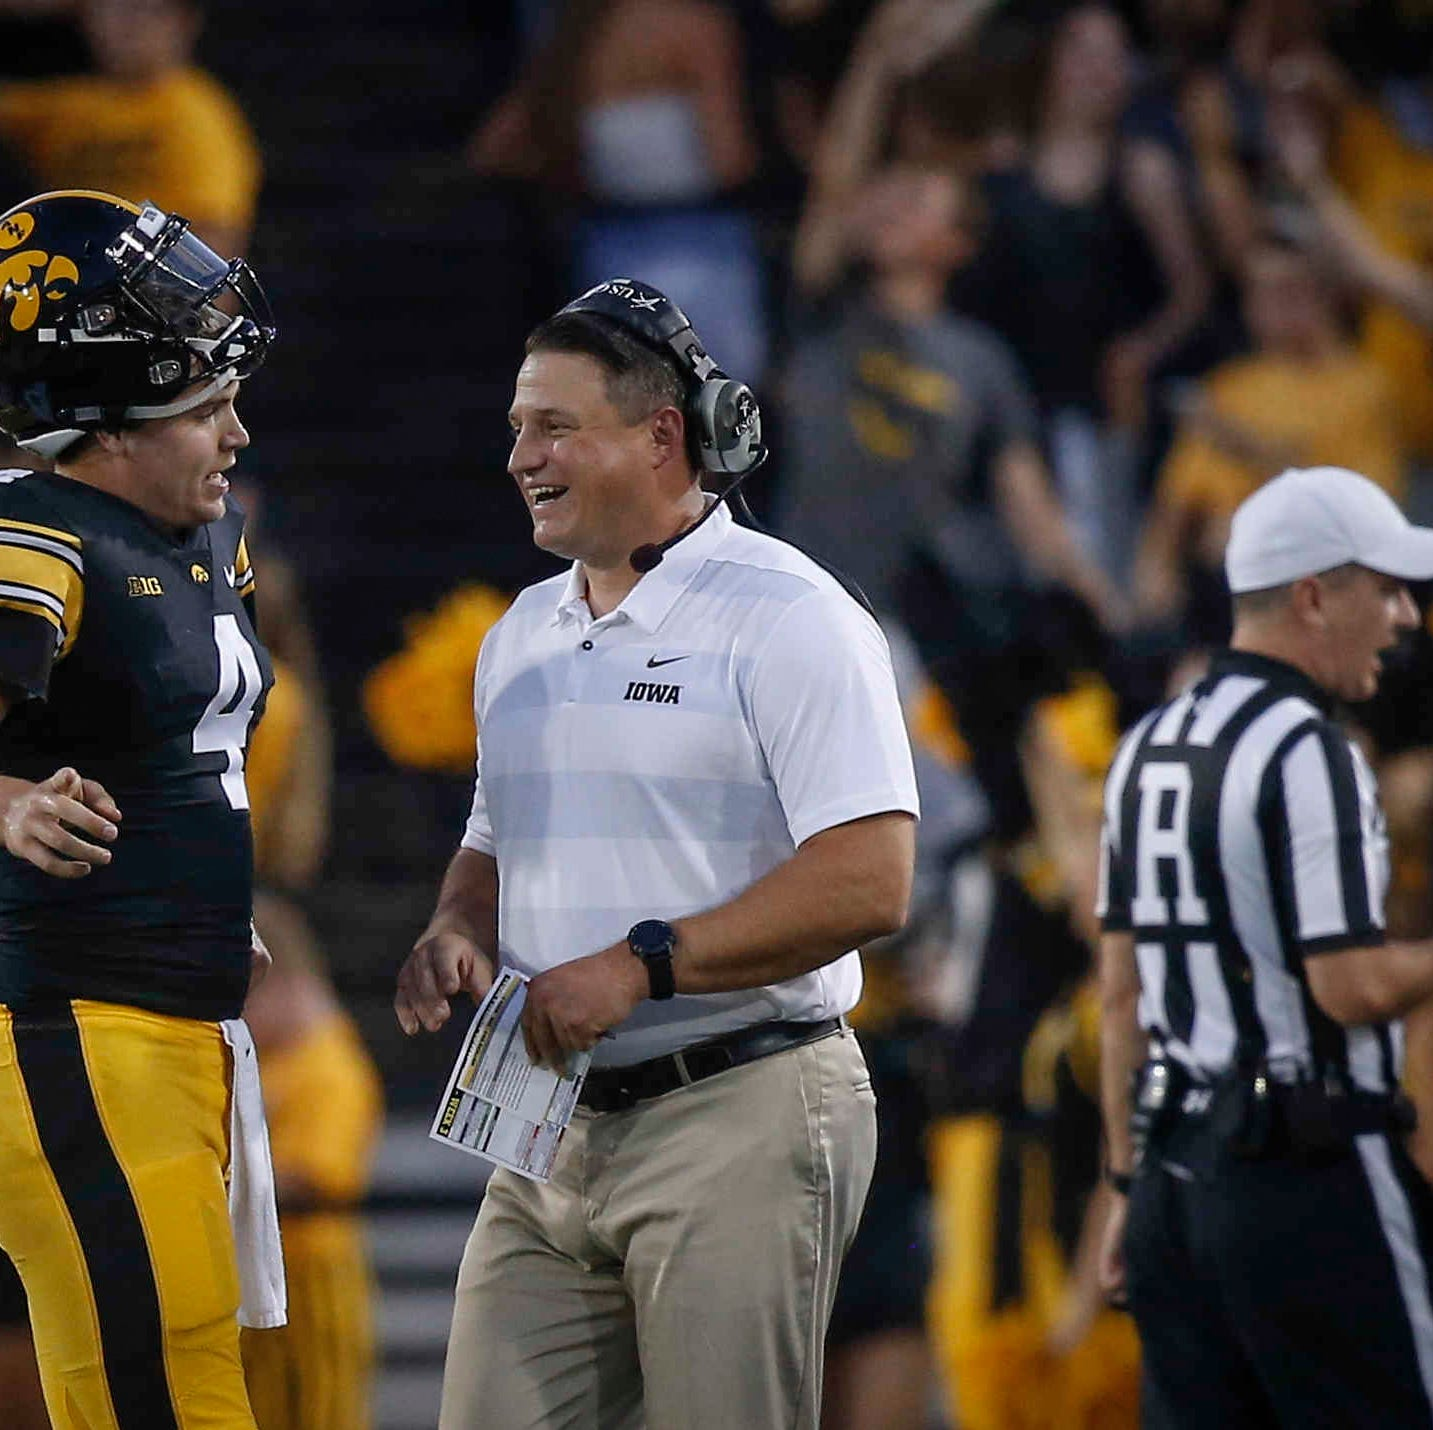 GAME REPLAY: No. 22 Iowa's 23-0 over Maryland, as it happened